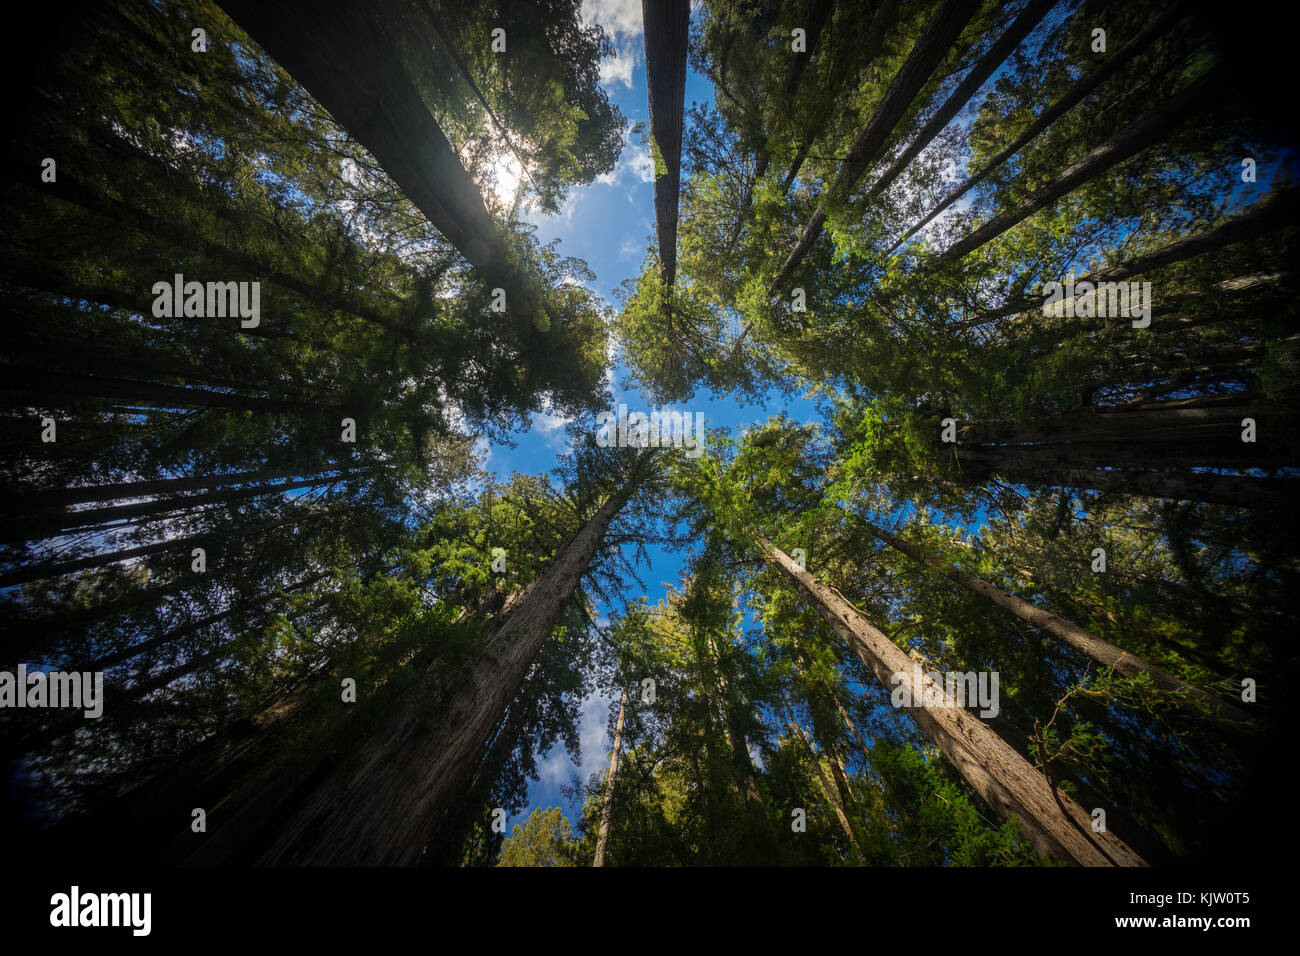 Californian redwoods - Stock Image